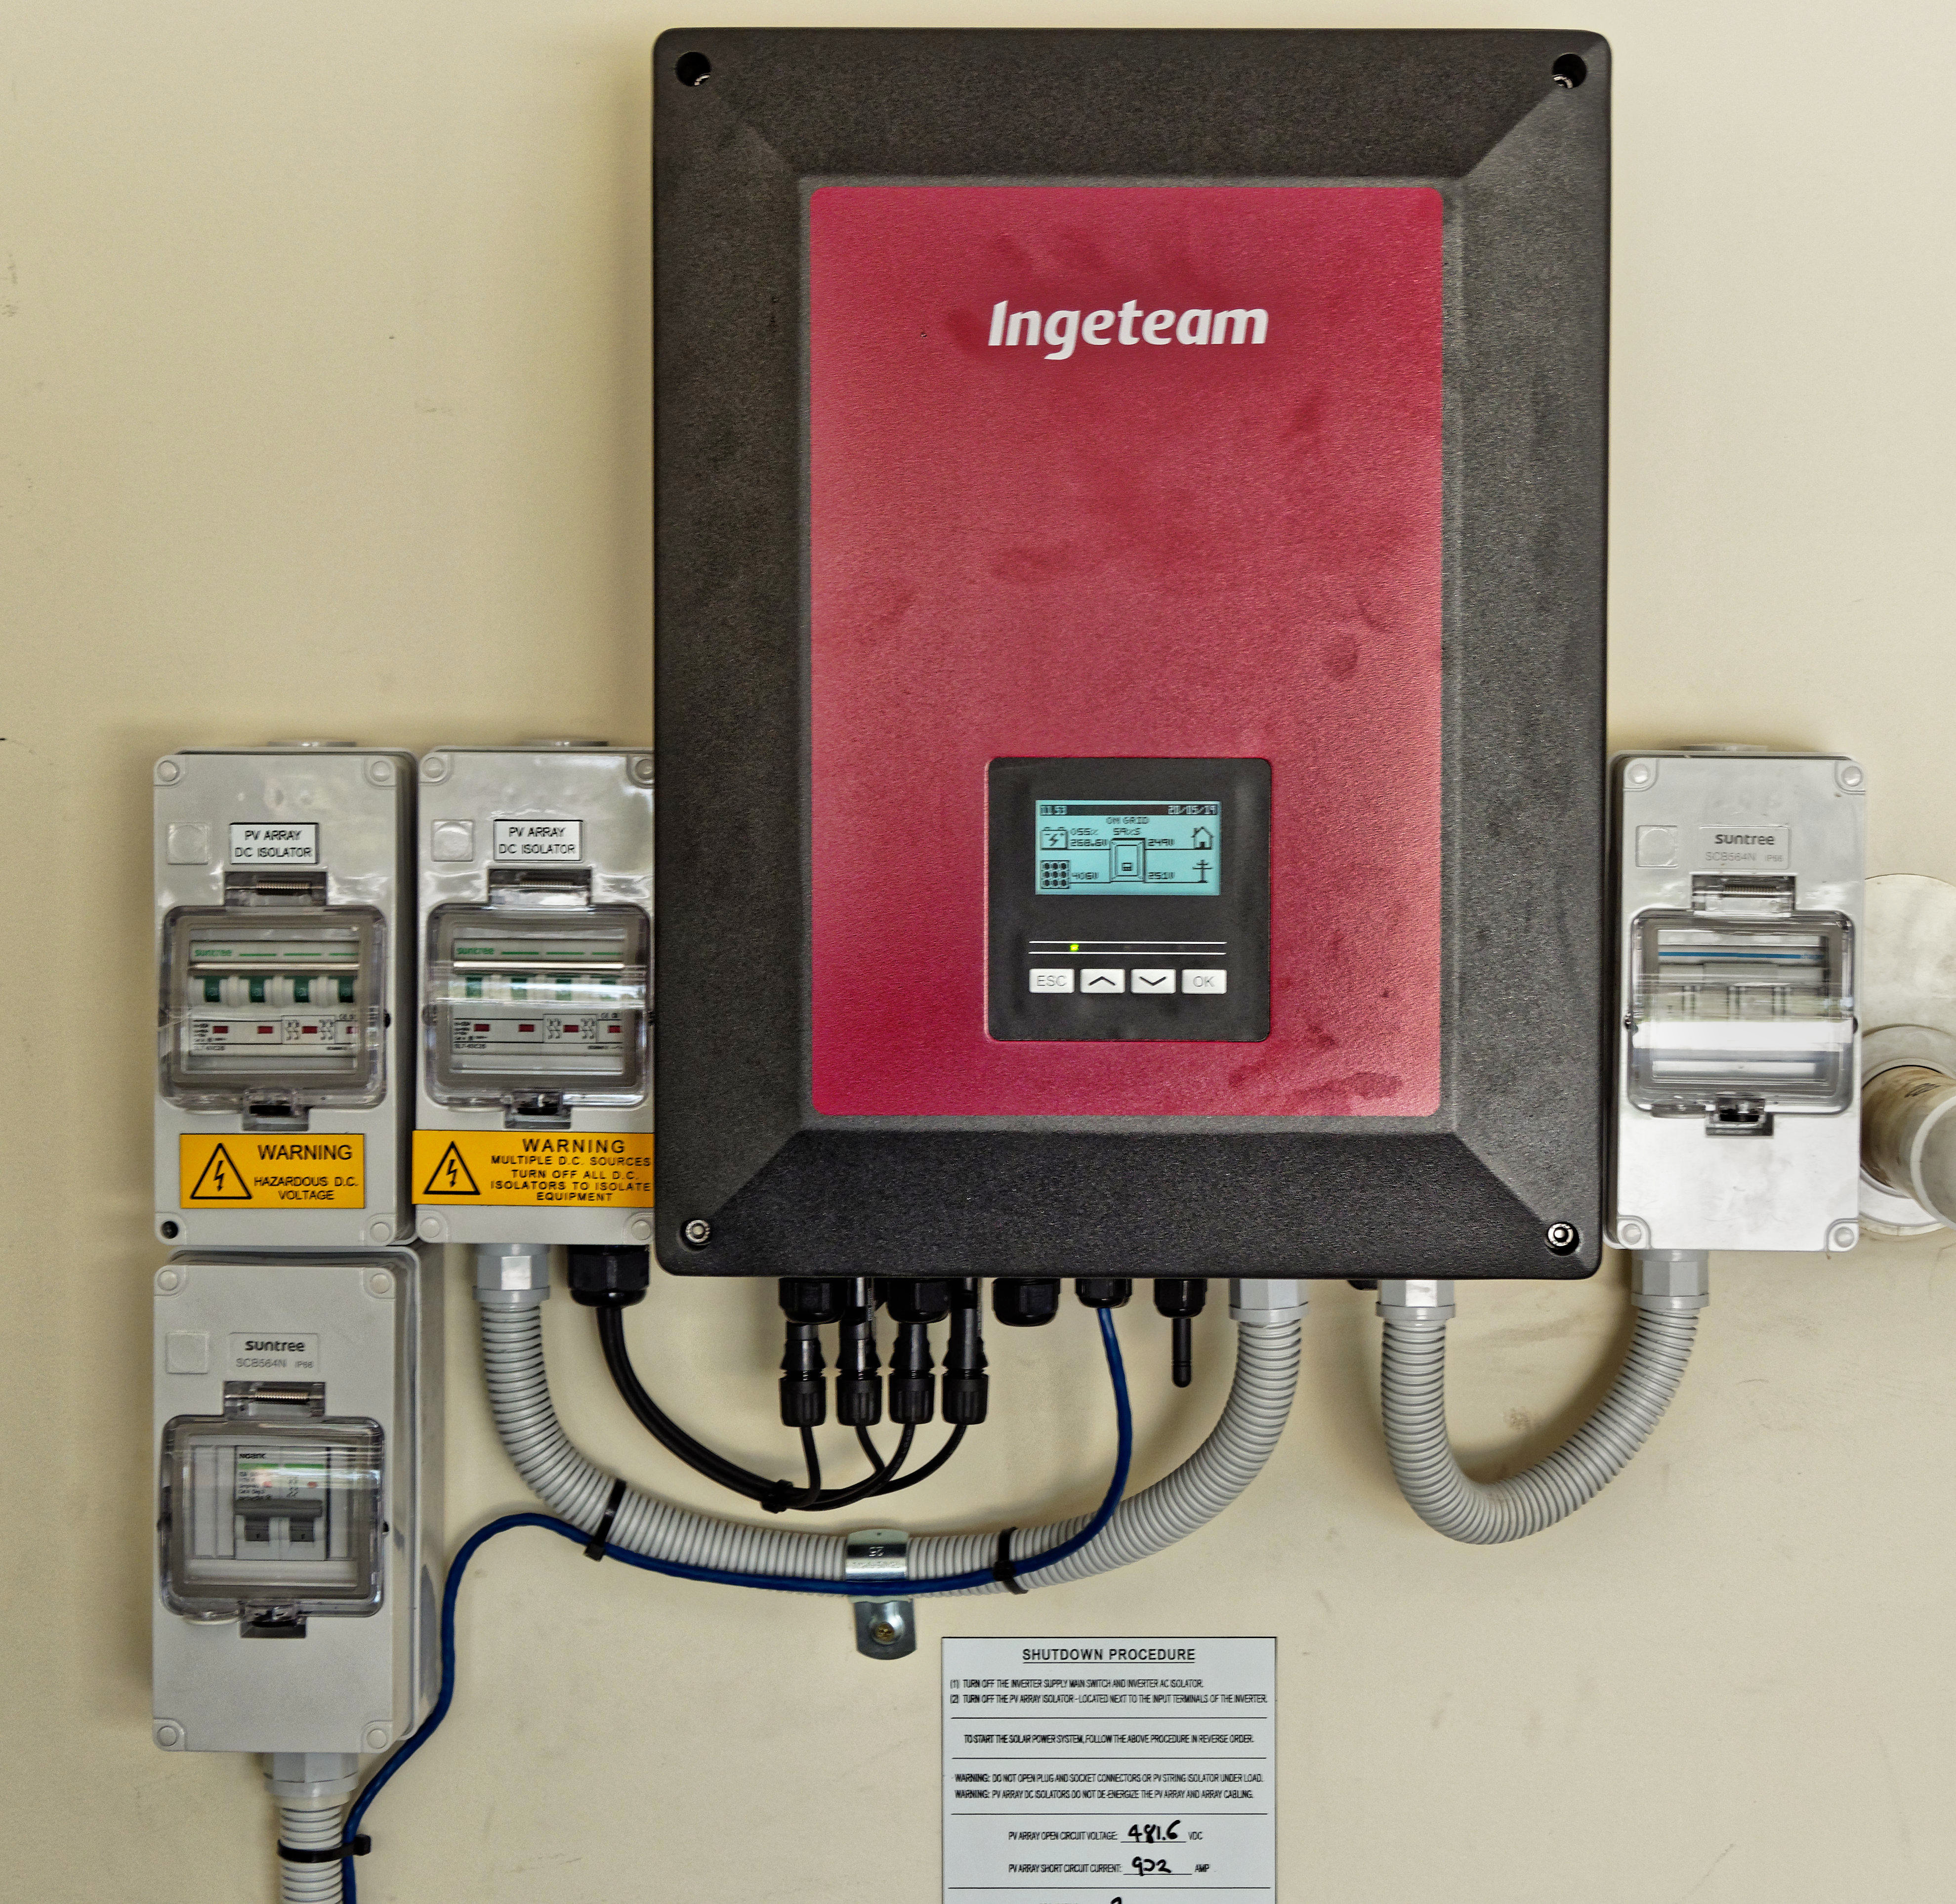 Ingecon-inverter-7.jpeg